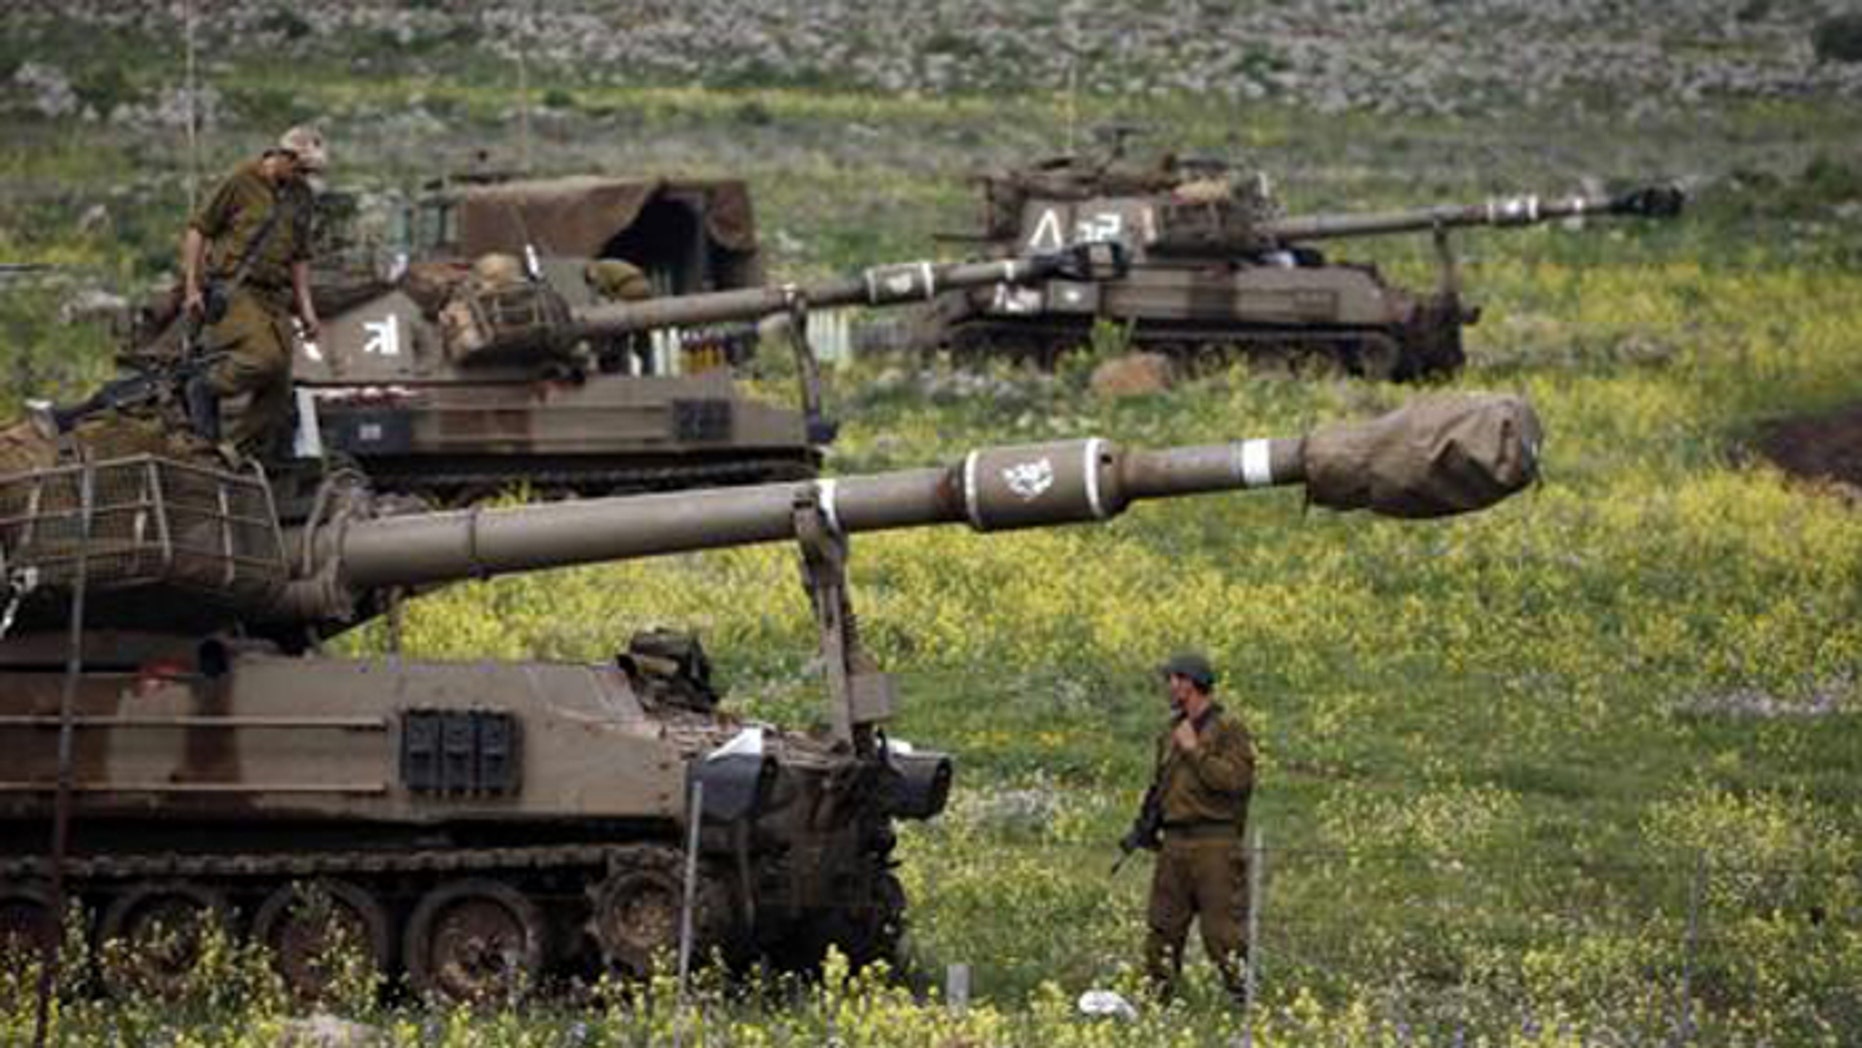 Israeli soldier stands beside a mobile artillery unit in the Golan Heights March 19, after Israel launched air strikes against Syrian military sites in response to a roadside bombing that wounded four of its soldiers. (Reuters)